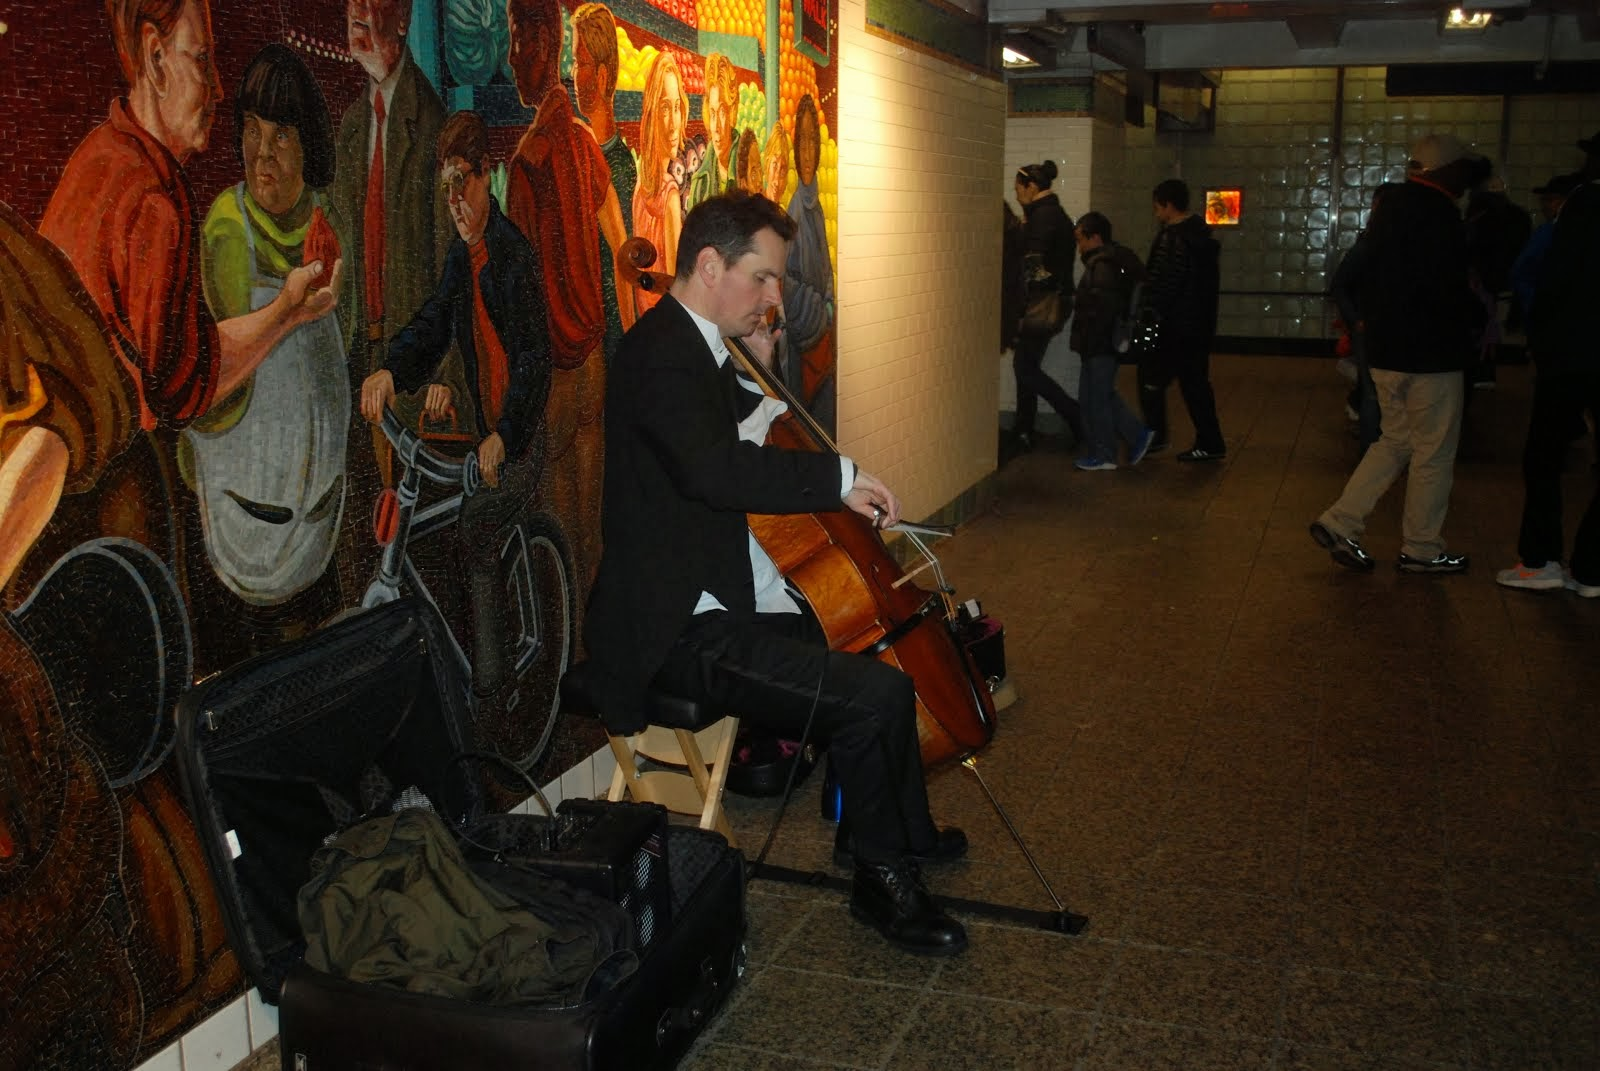 Cellist in NYC Subway